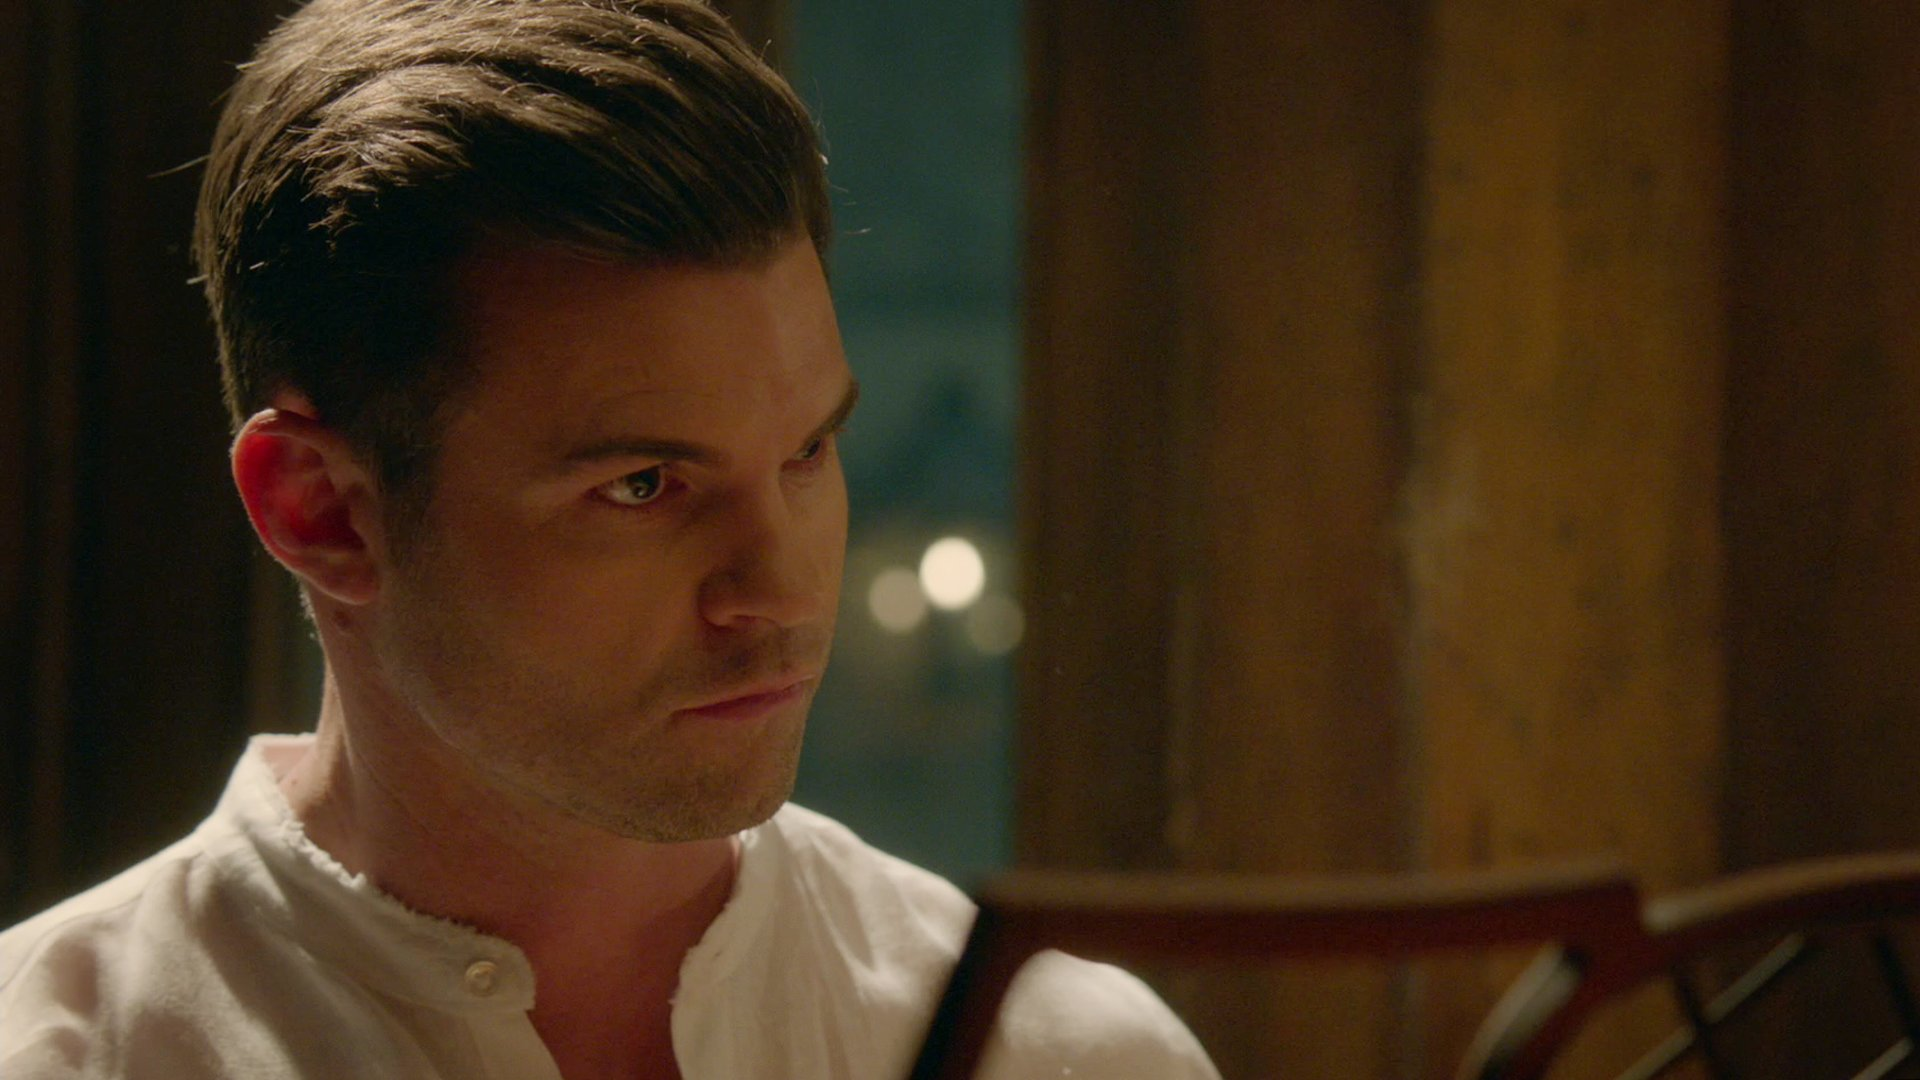 A new life for Elijah. The final season begins Wednesday at 9/8c on The CW! #TheOriginals https://t.co/HnWs9G4P7T